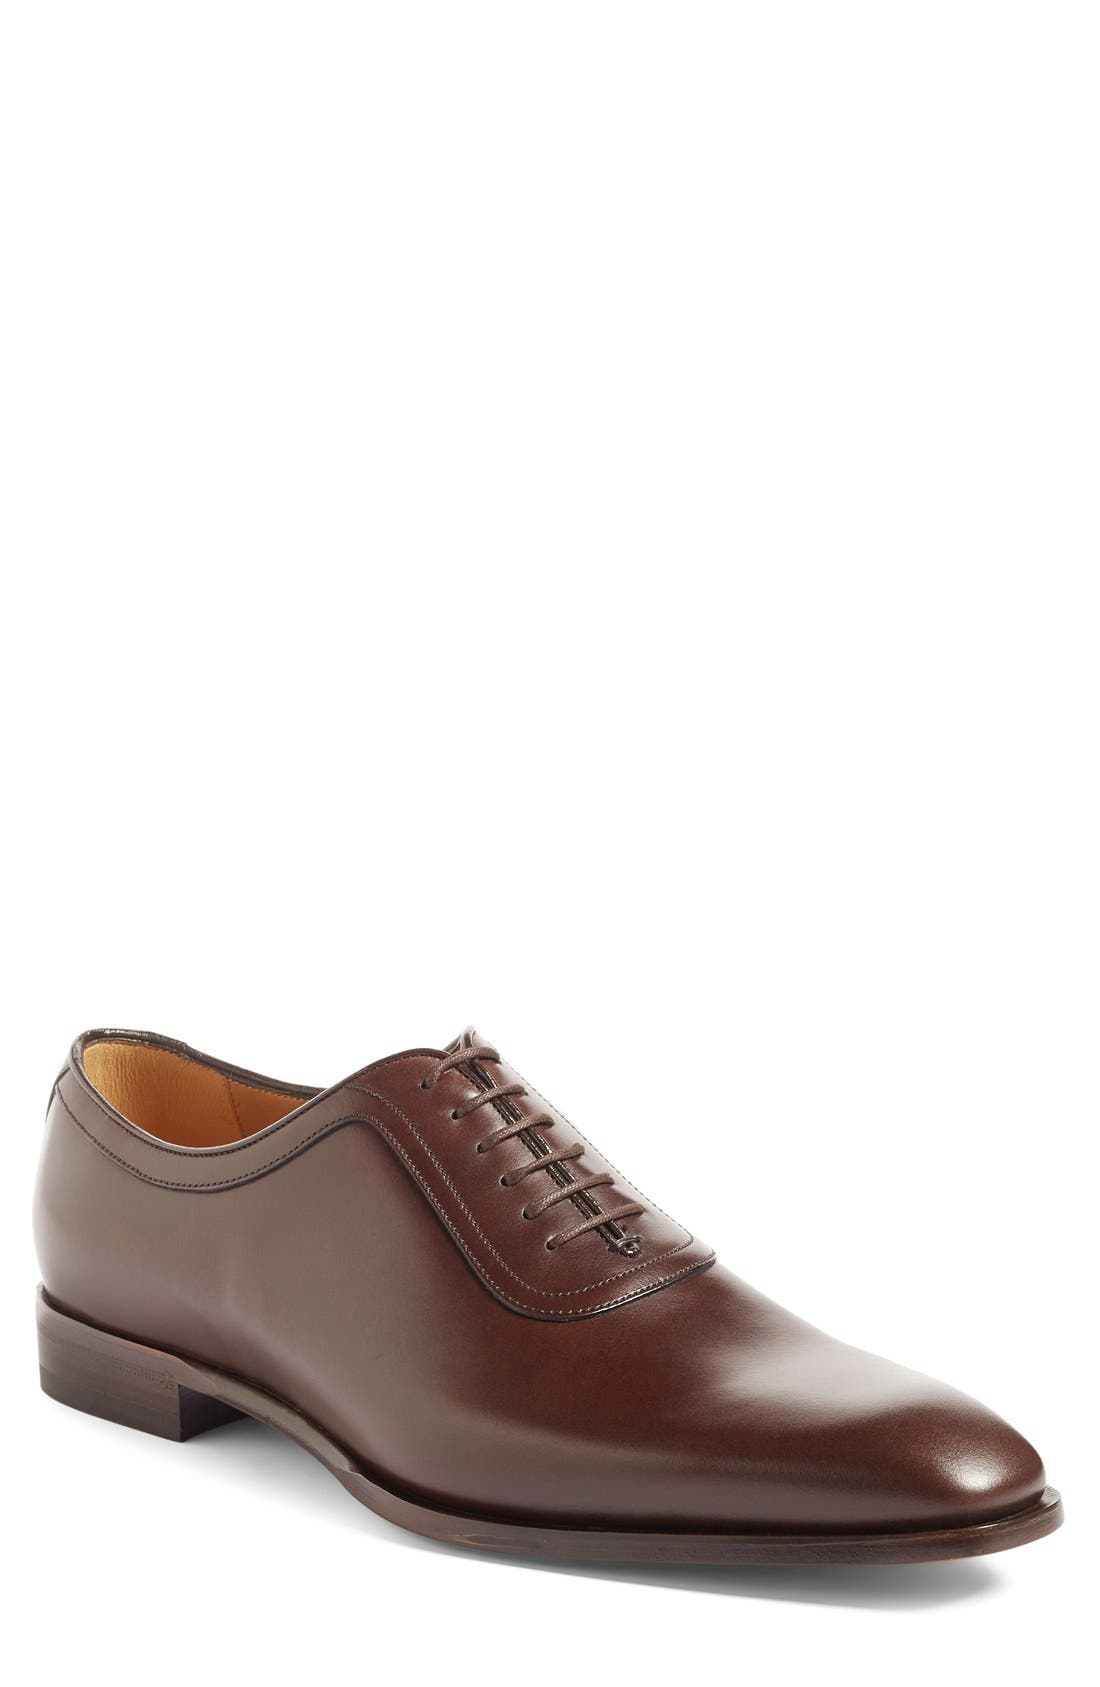 Gucci Broadwick Plain Toe Oxford (Men)